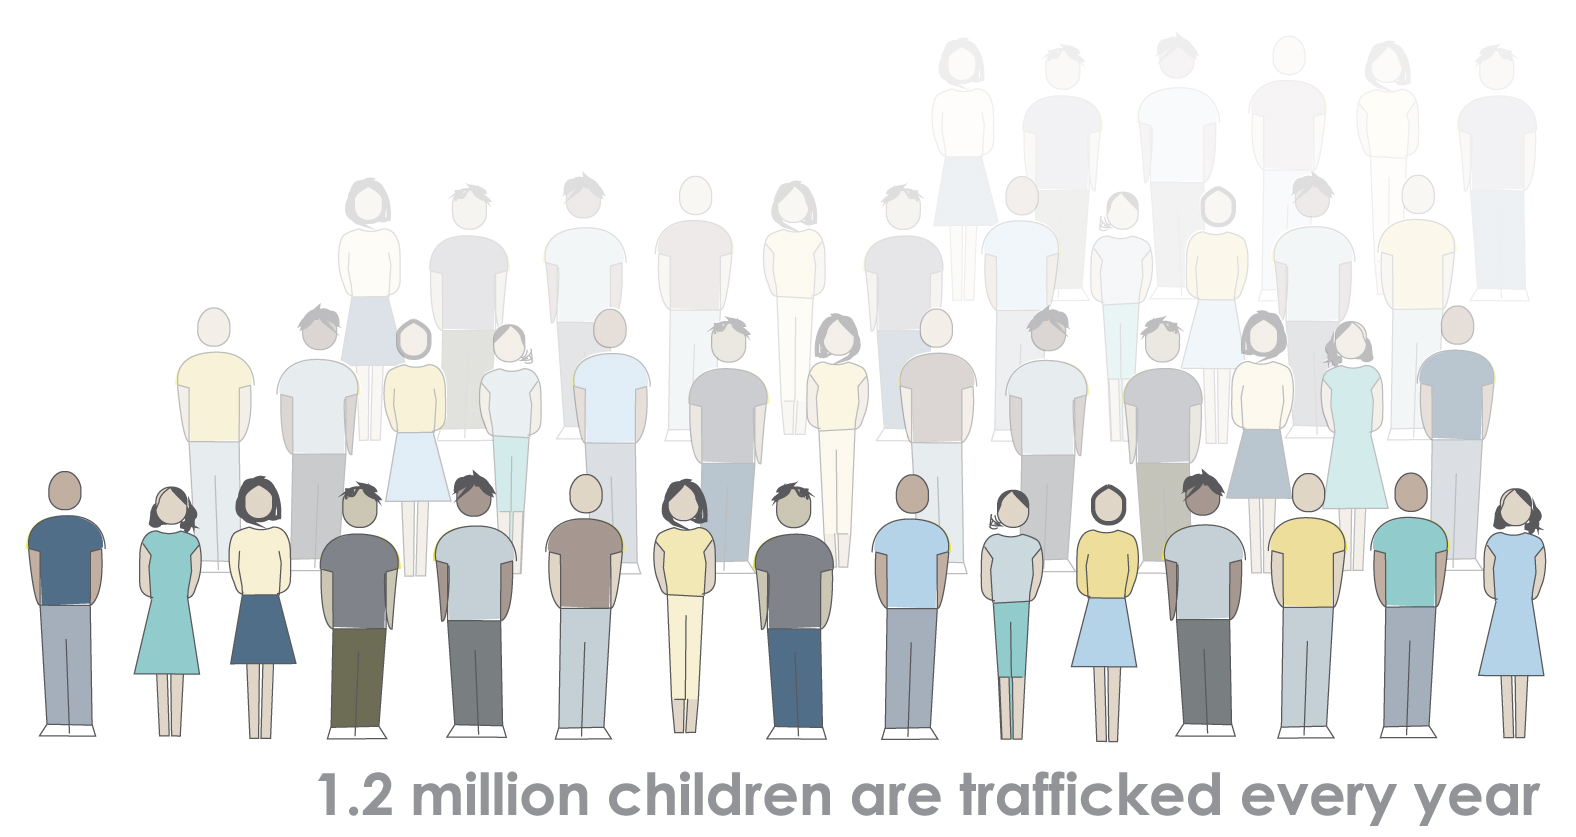 Infographic for the Baca charity, showing that 1.2 million children are trafficked every year.